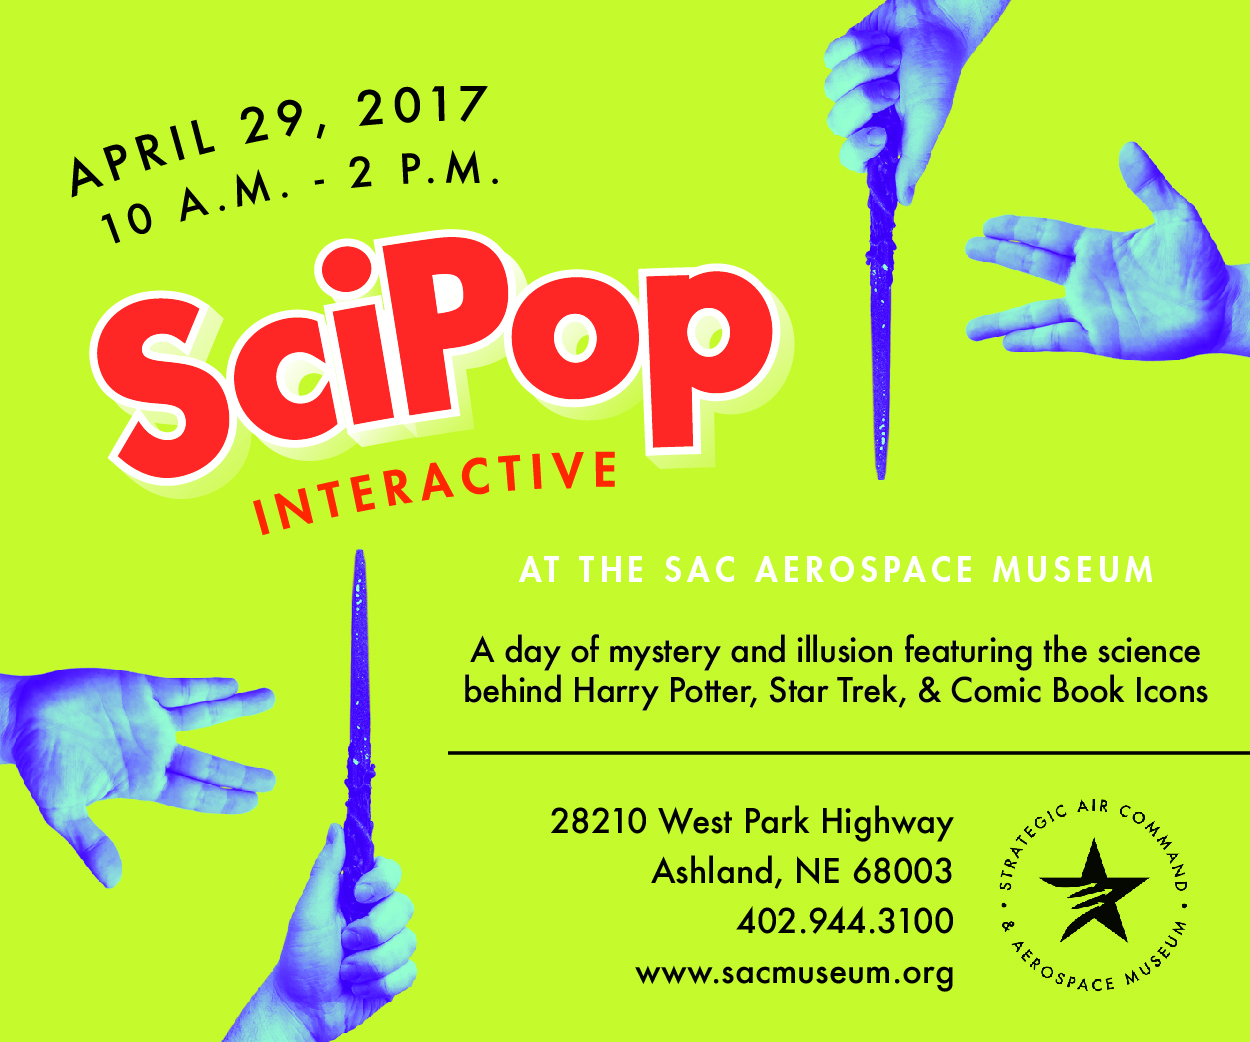 SciPop at the Nebarska Air & Space Museum in Ashland NE April 29th from 10am-2pm